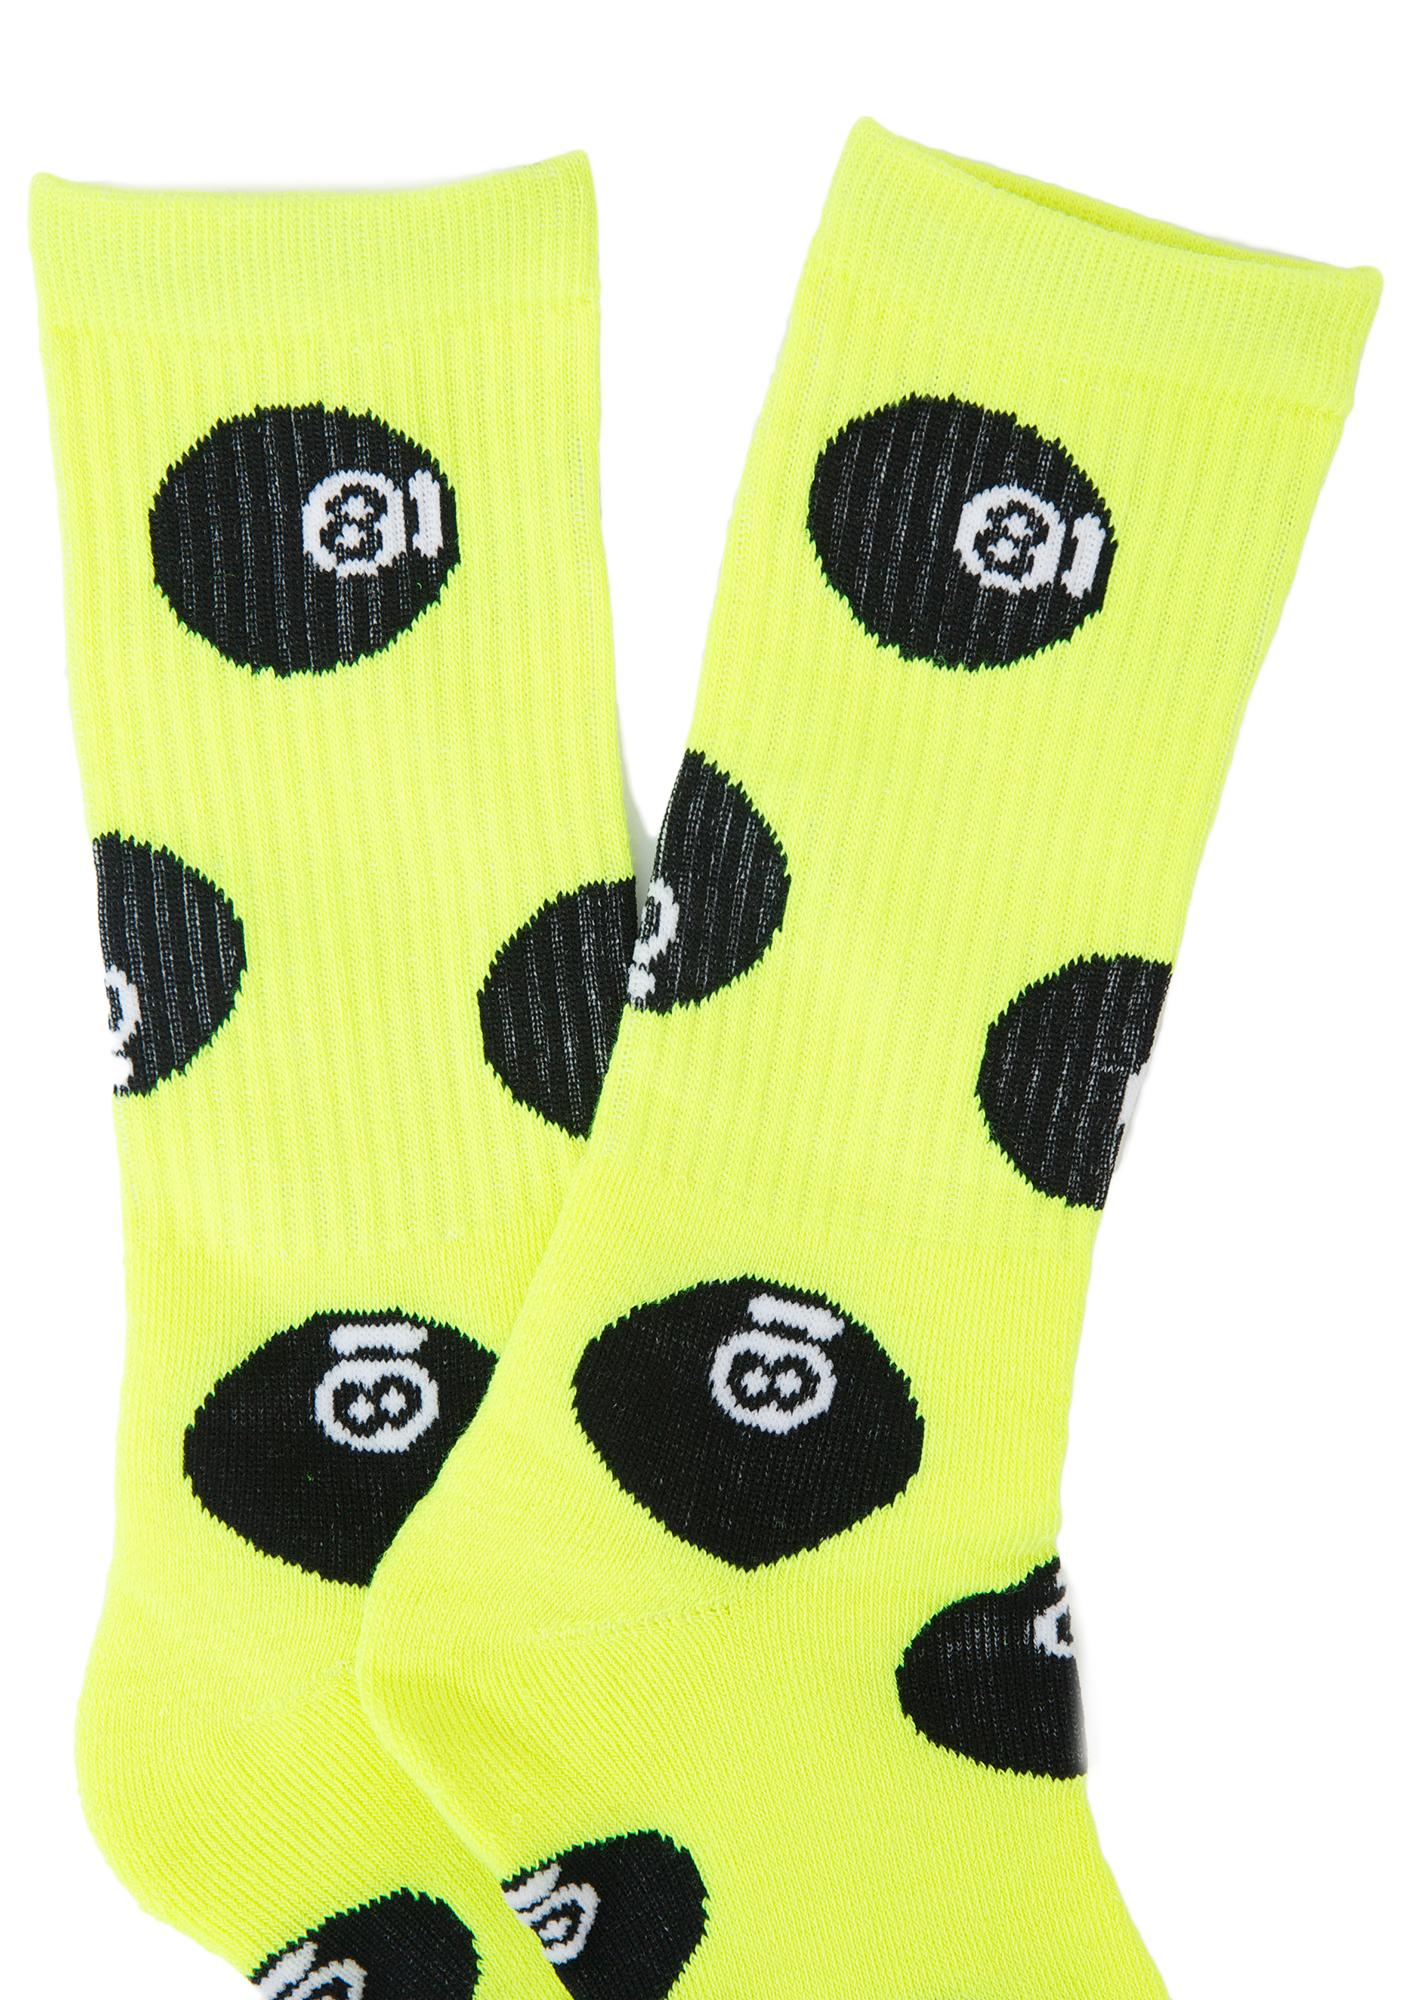 40s & Shorties 8 Ball Socks